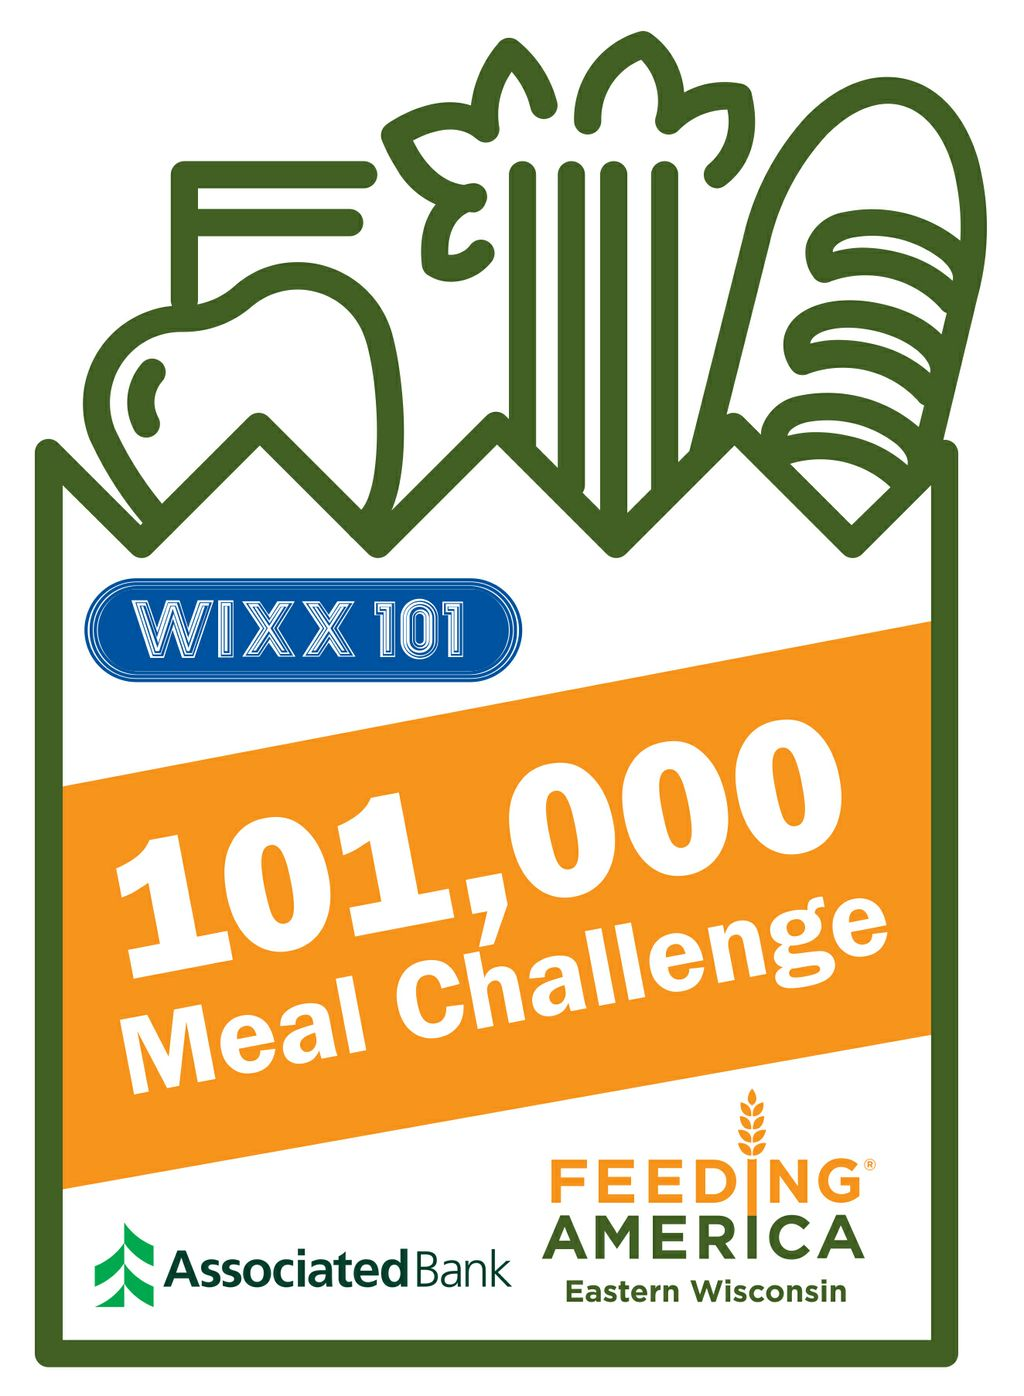 101,000 Meal Challenge